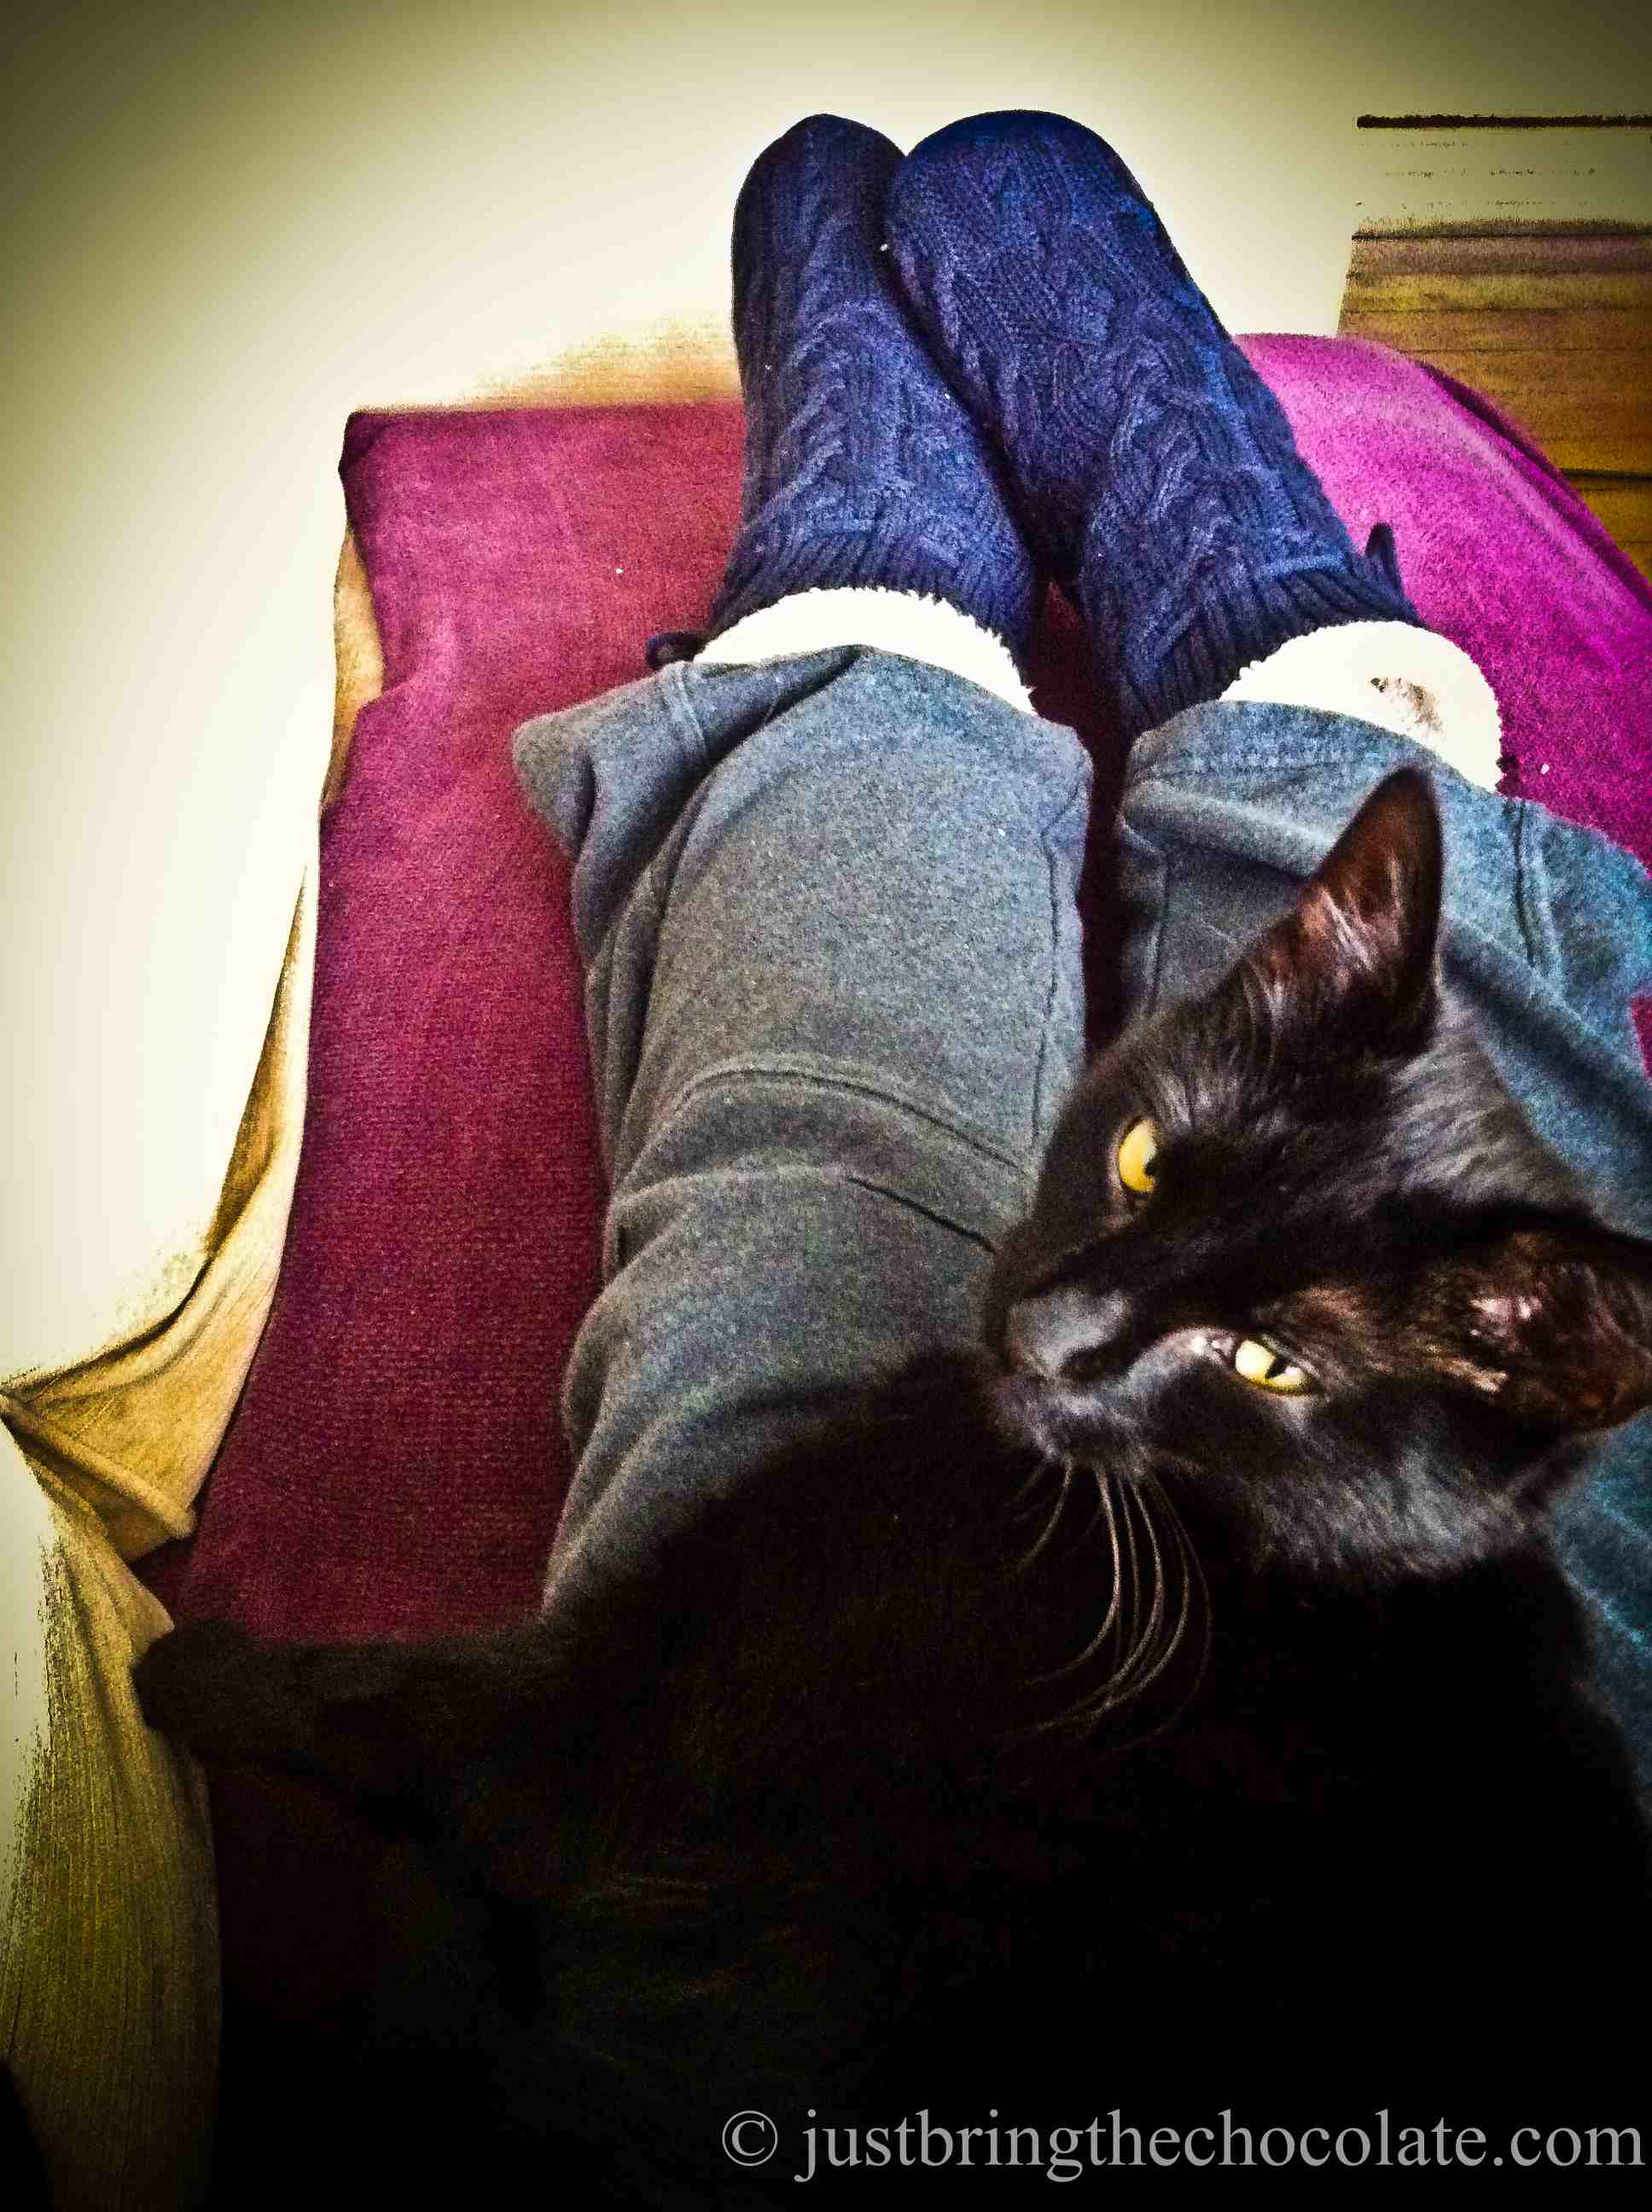 cat on lap and granny slippers